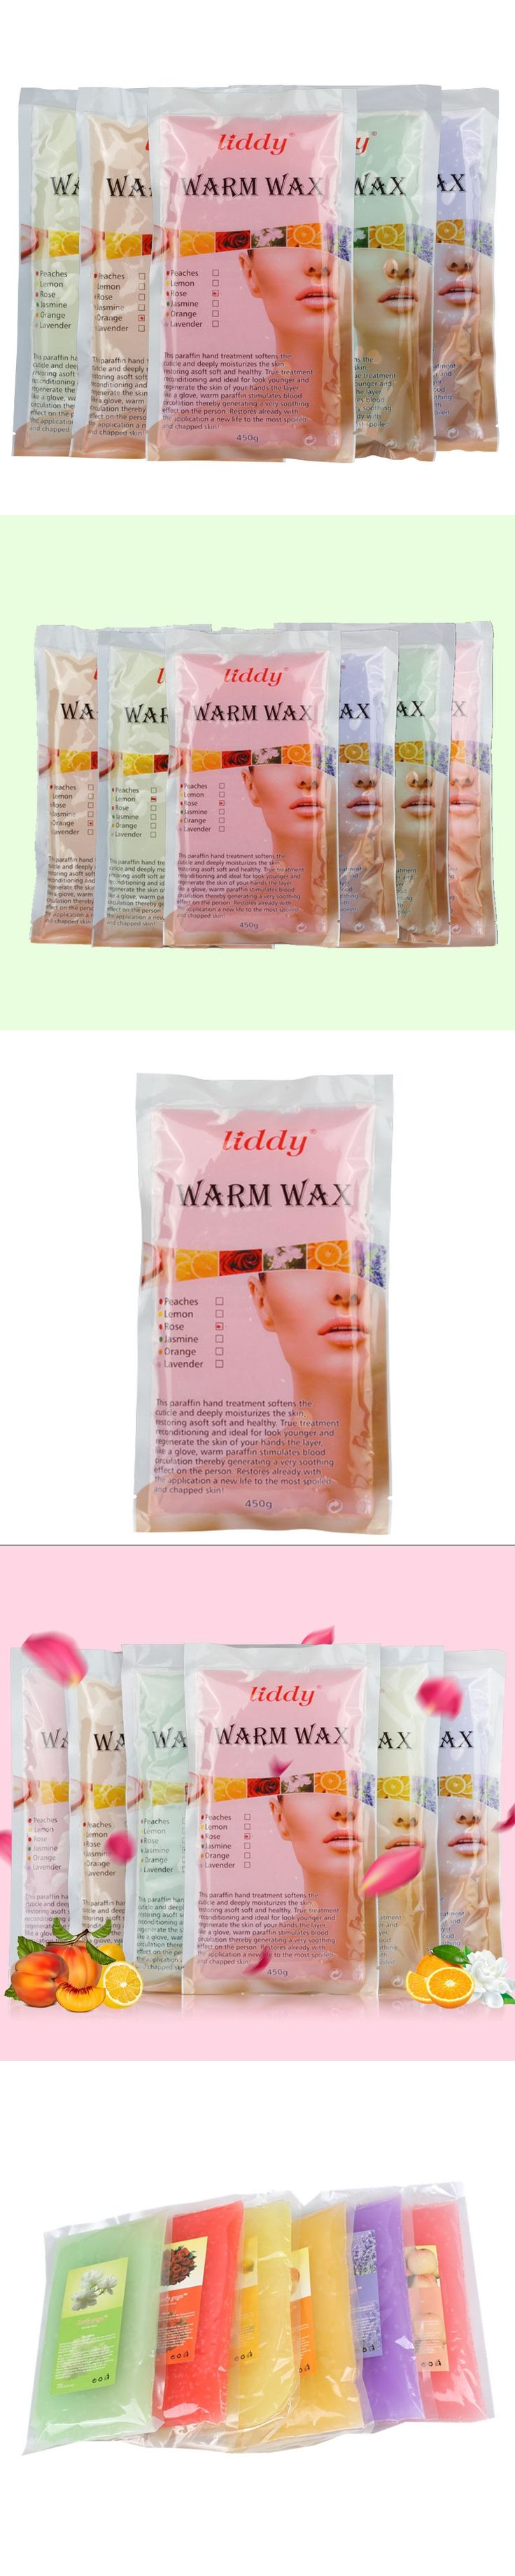 Paraffin Baths Warm Wax For Hands Skin Care Hands Mask Moisturizing Beauty Antiperspirants Tools For Women Lady  HB88